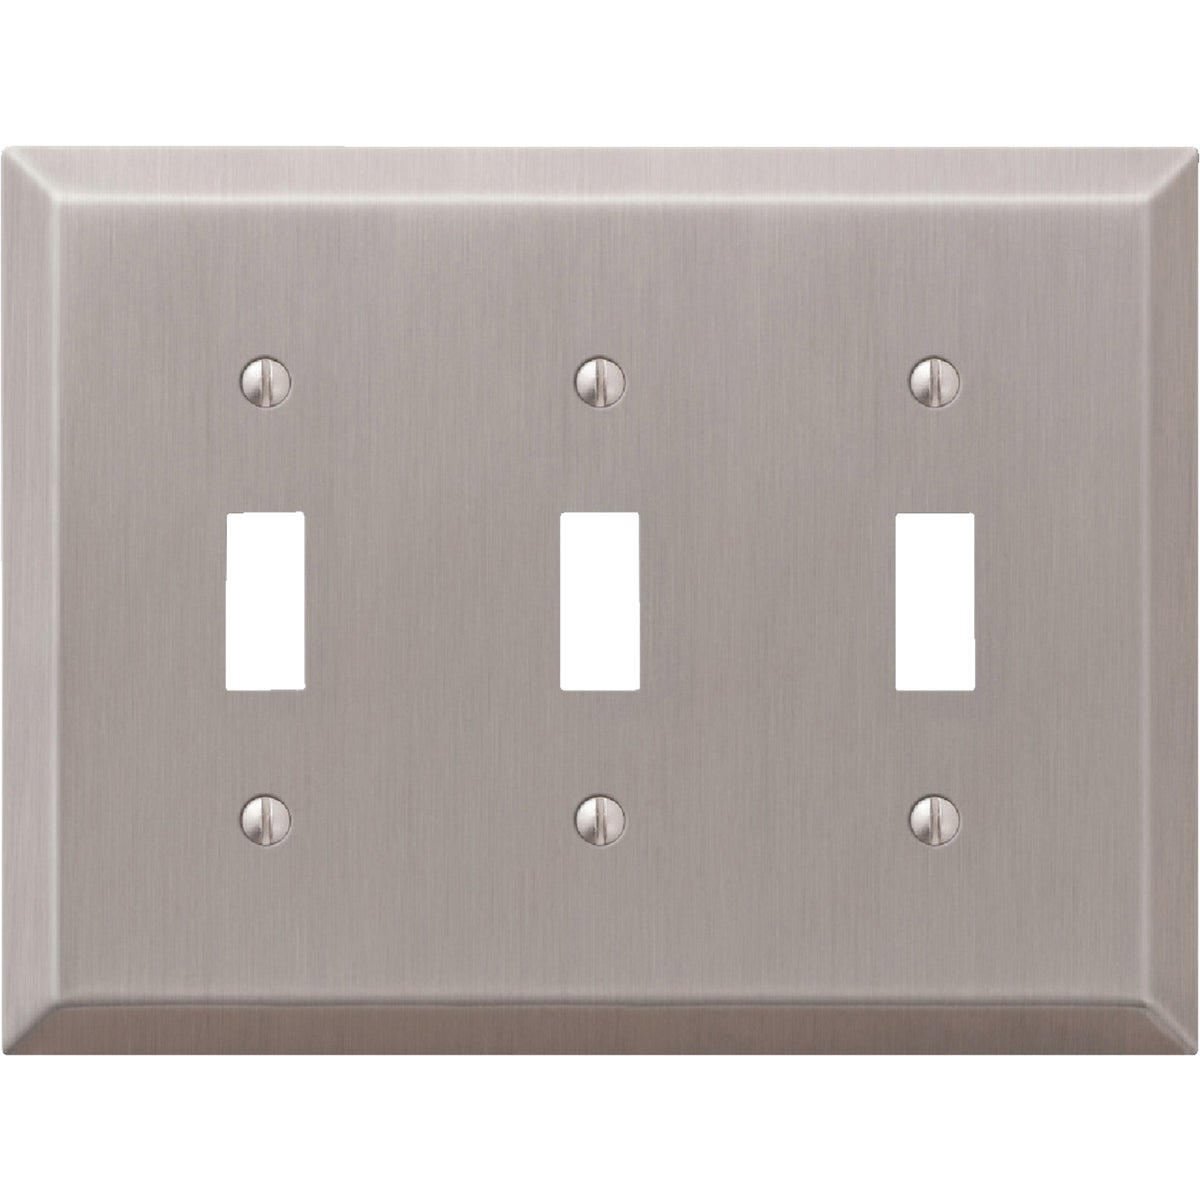 3TGL BNKL WALLPLATE - 9PT103 by Jackson Deerfield Mf